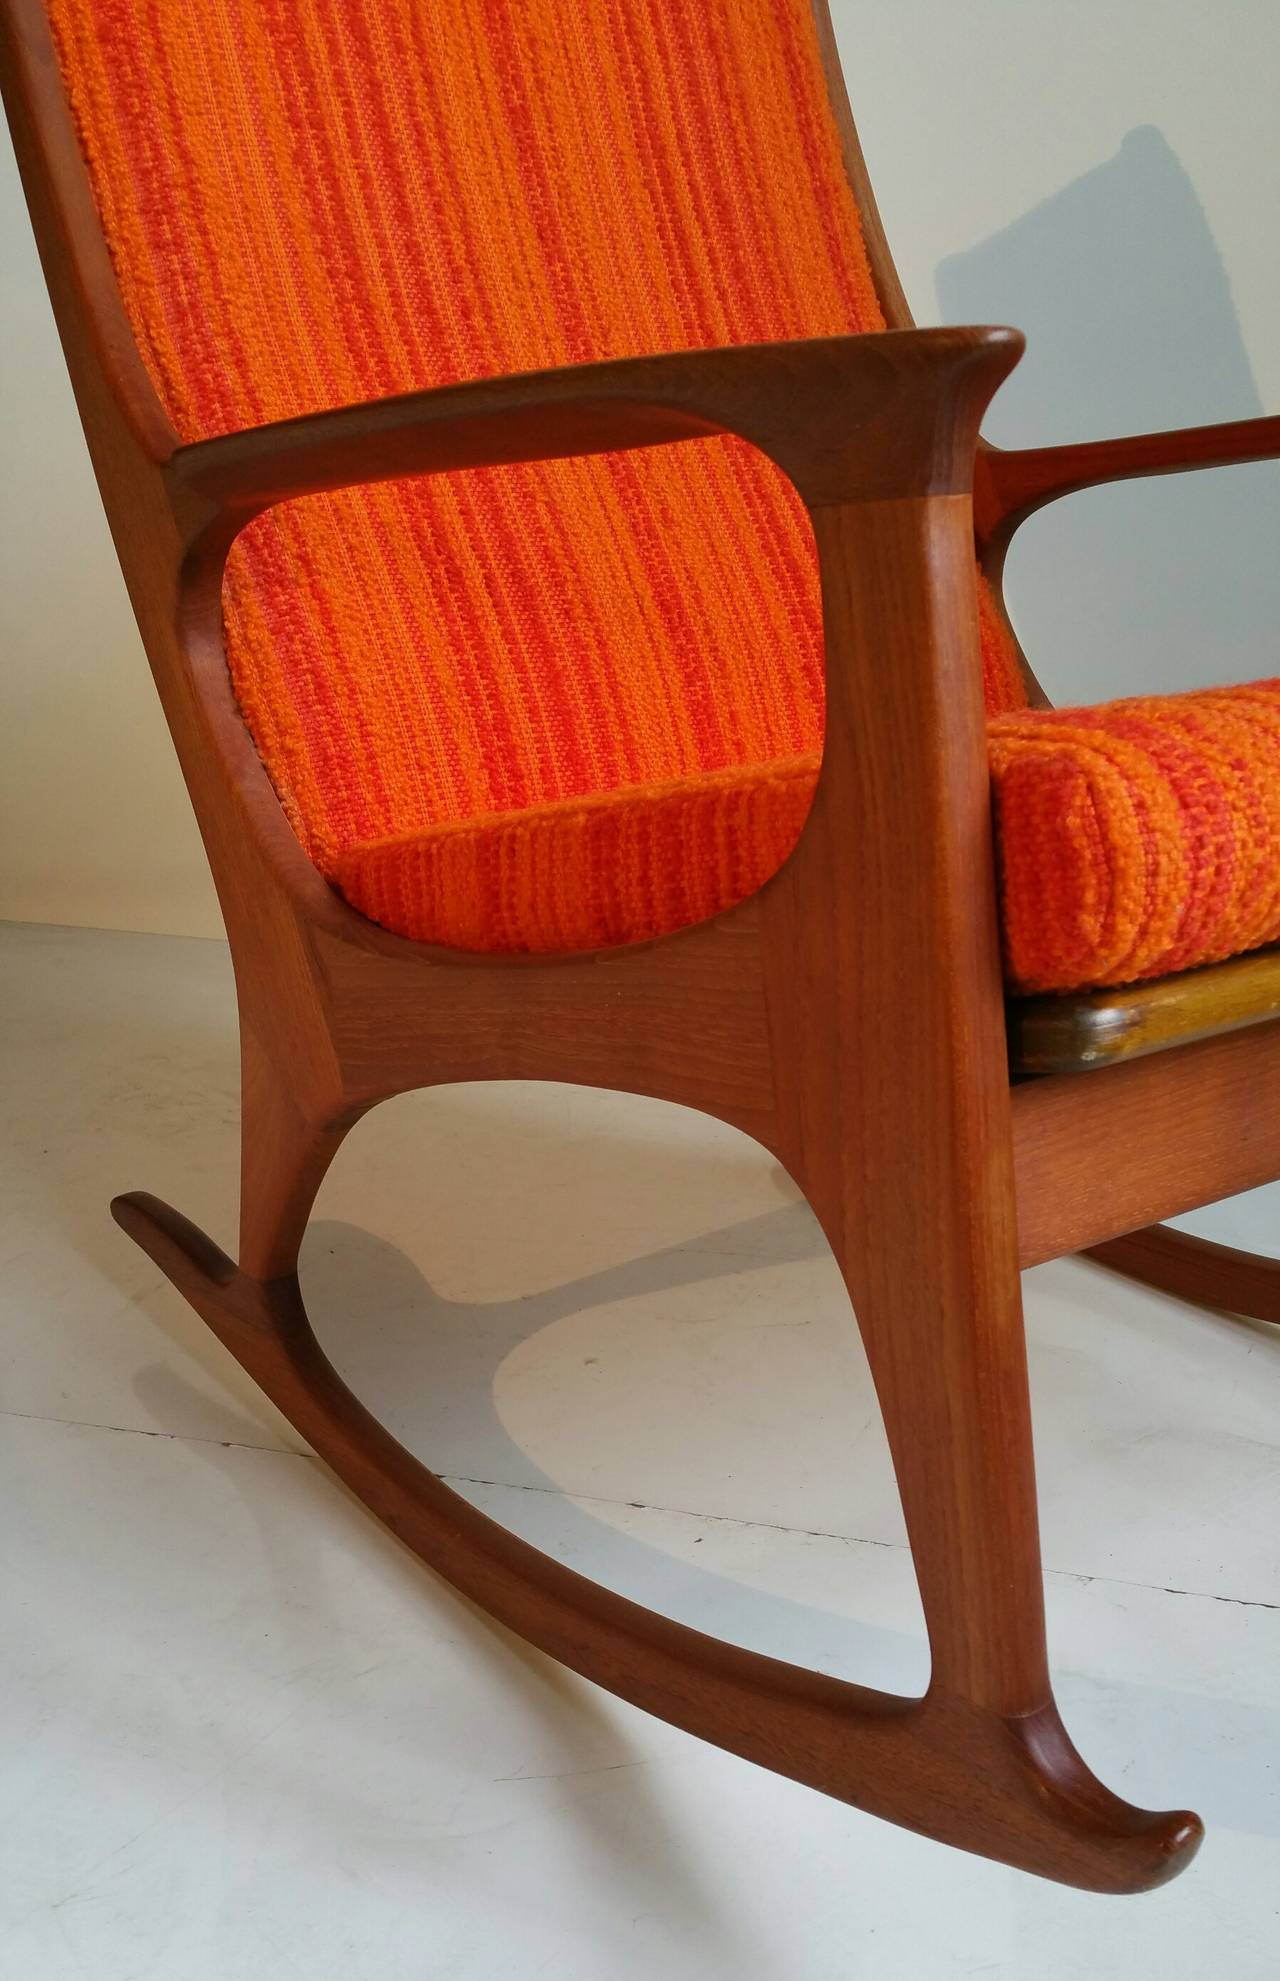 Midcentury Danish Modern Teak Rocking Chair at 1stdibs